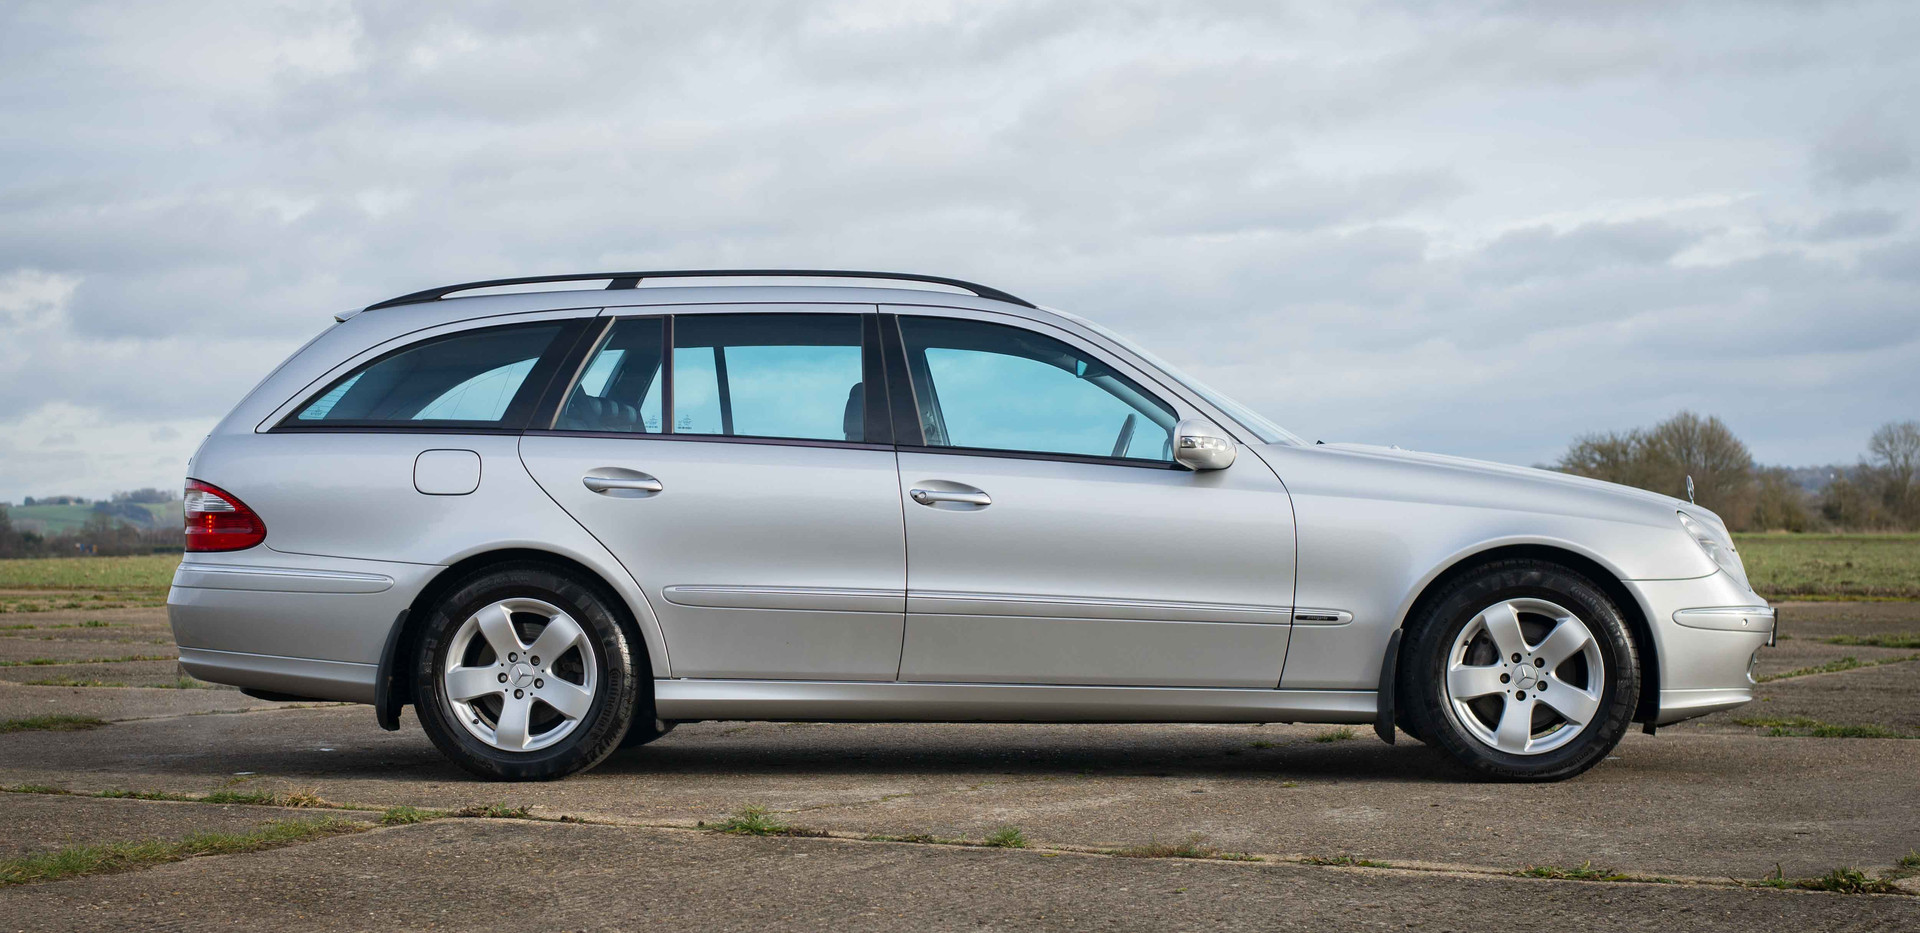 Mercedes E320CDI For Sale UK London  (41